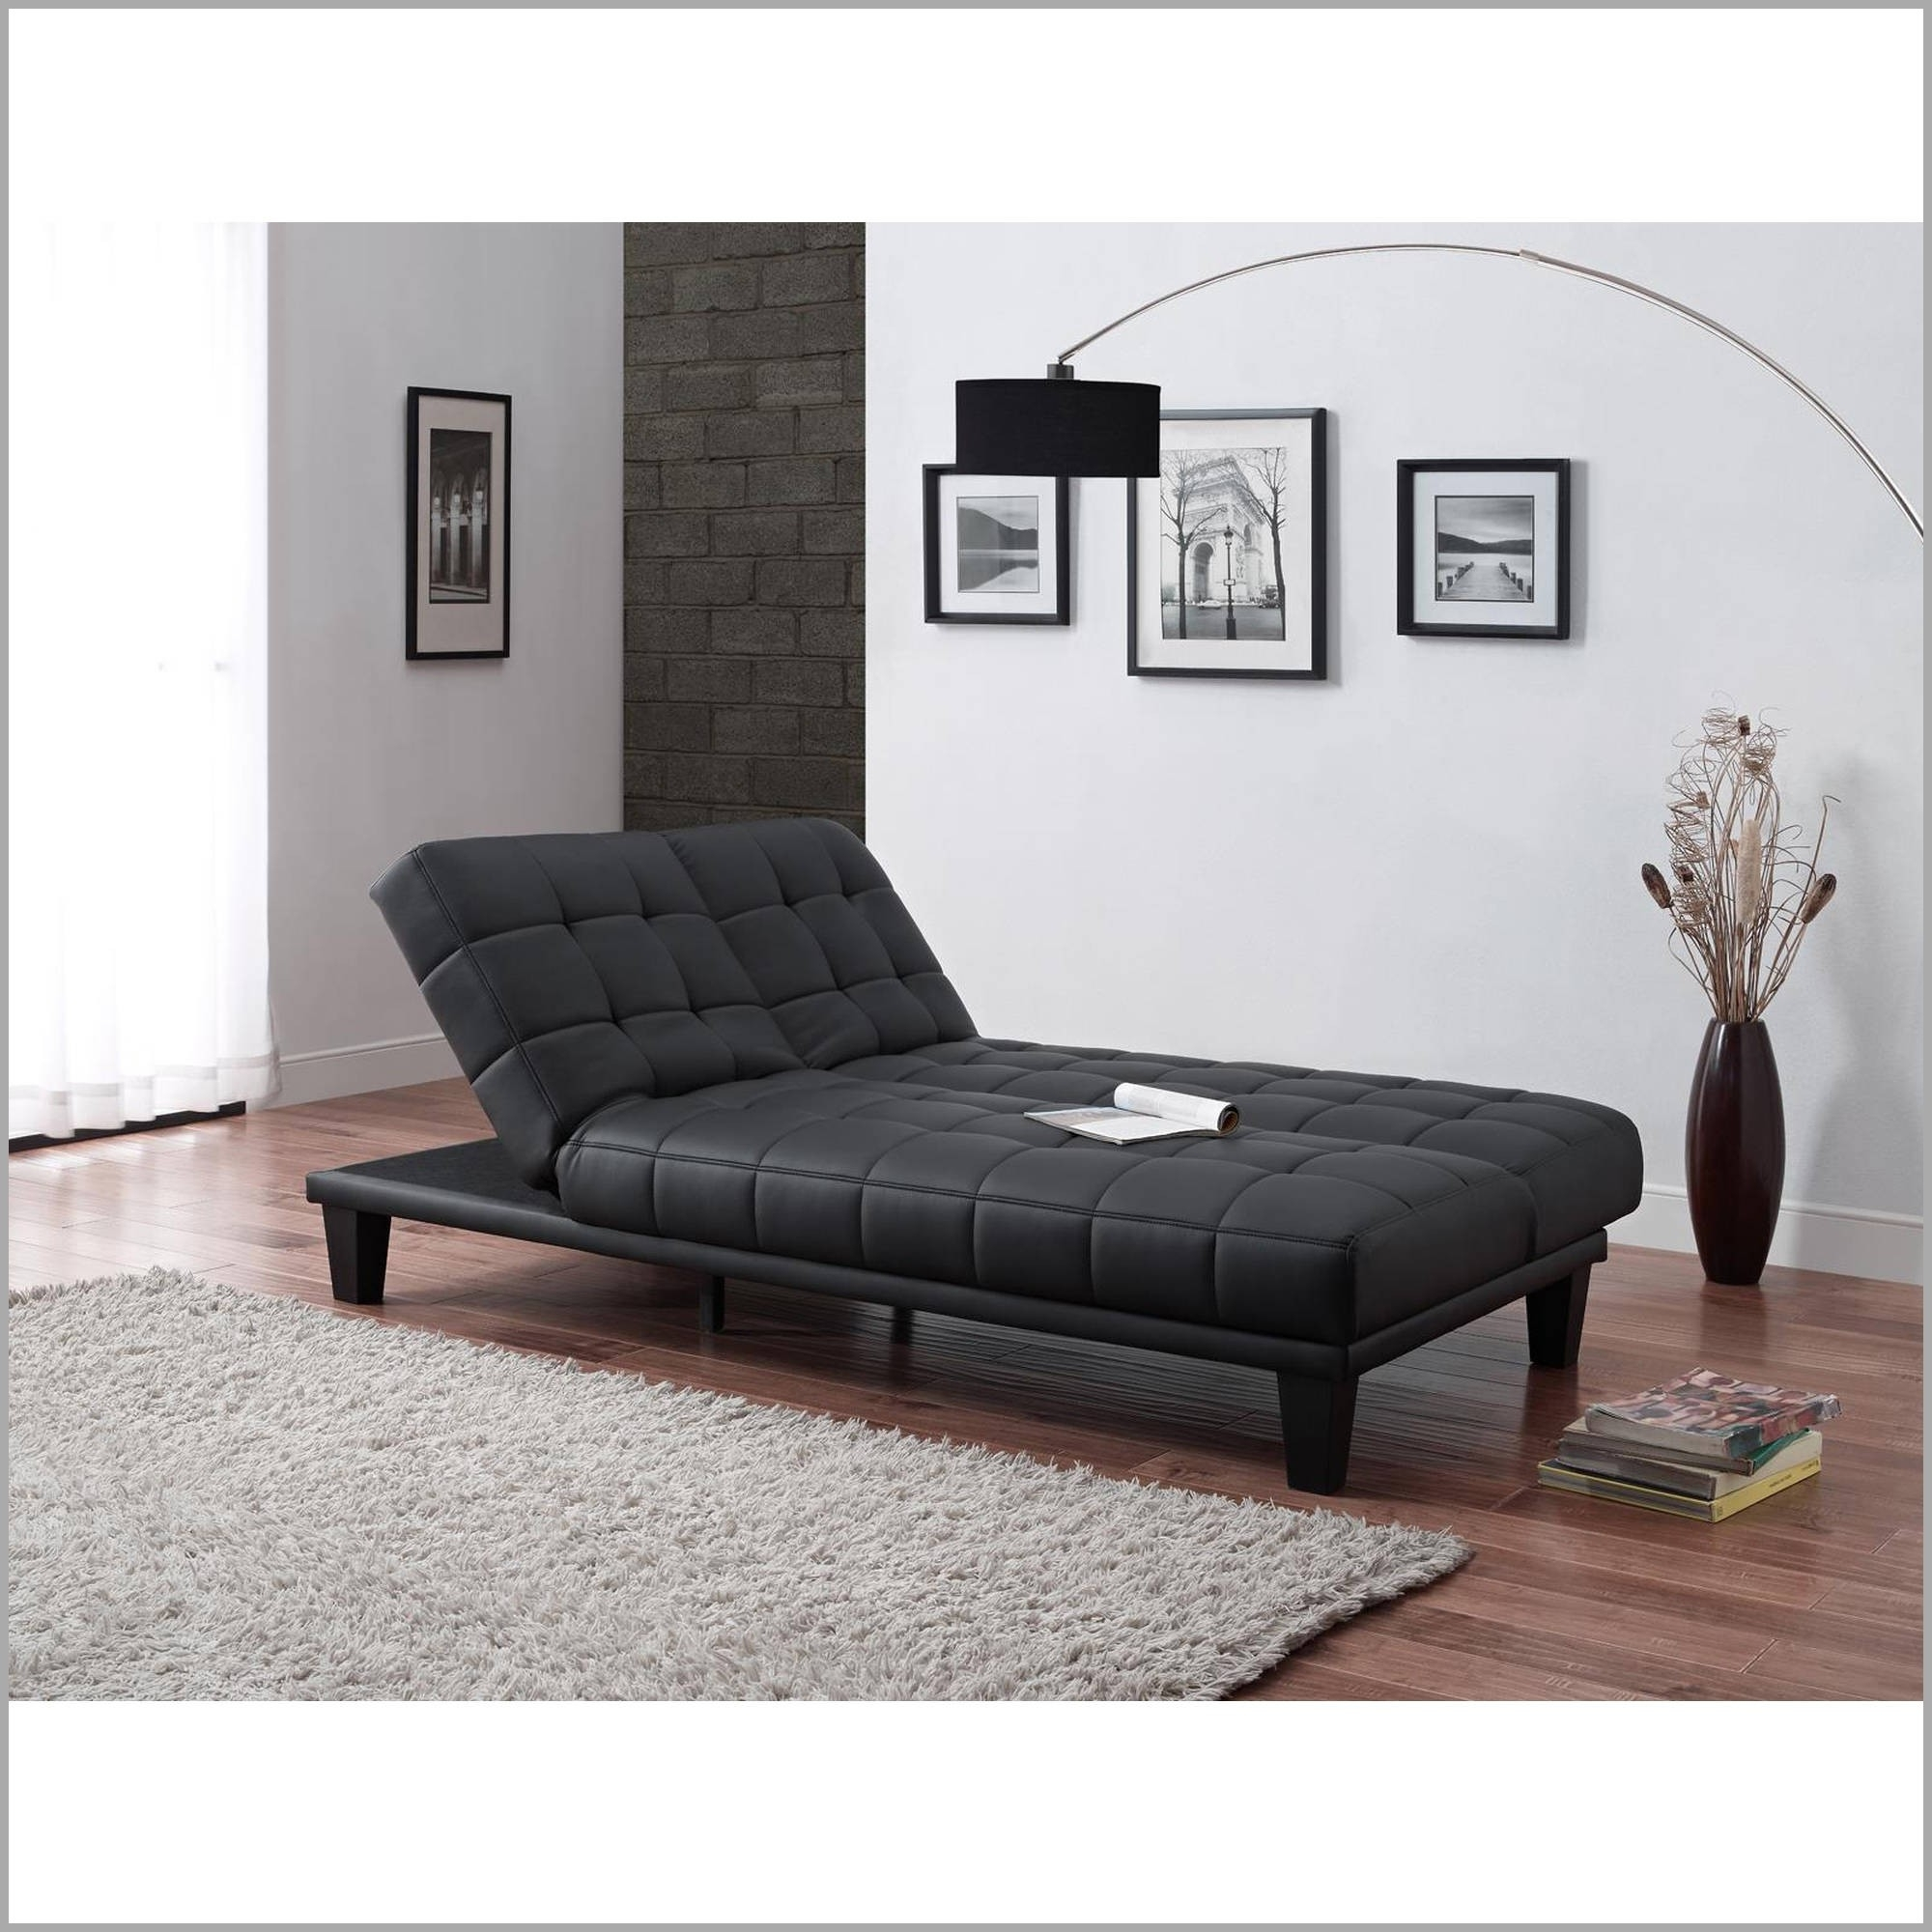 Awesome Futon Lounger Accessories 53018 – Futon Ideas Pertaining To Most Current Futons With Chaise Lounge (View 4 of 15)